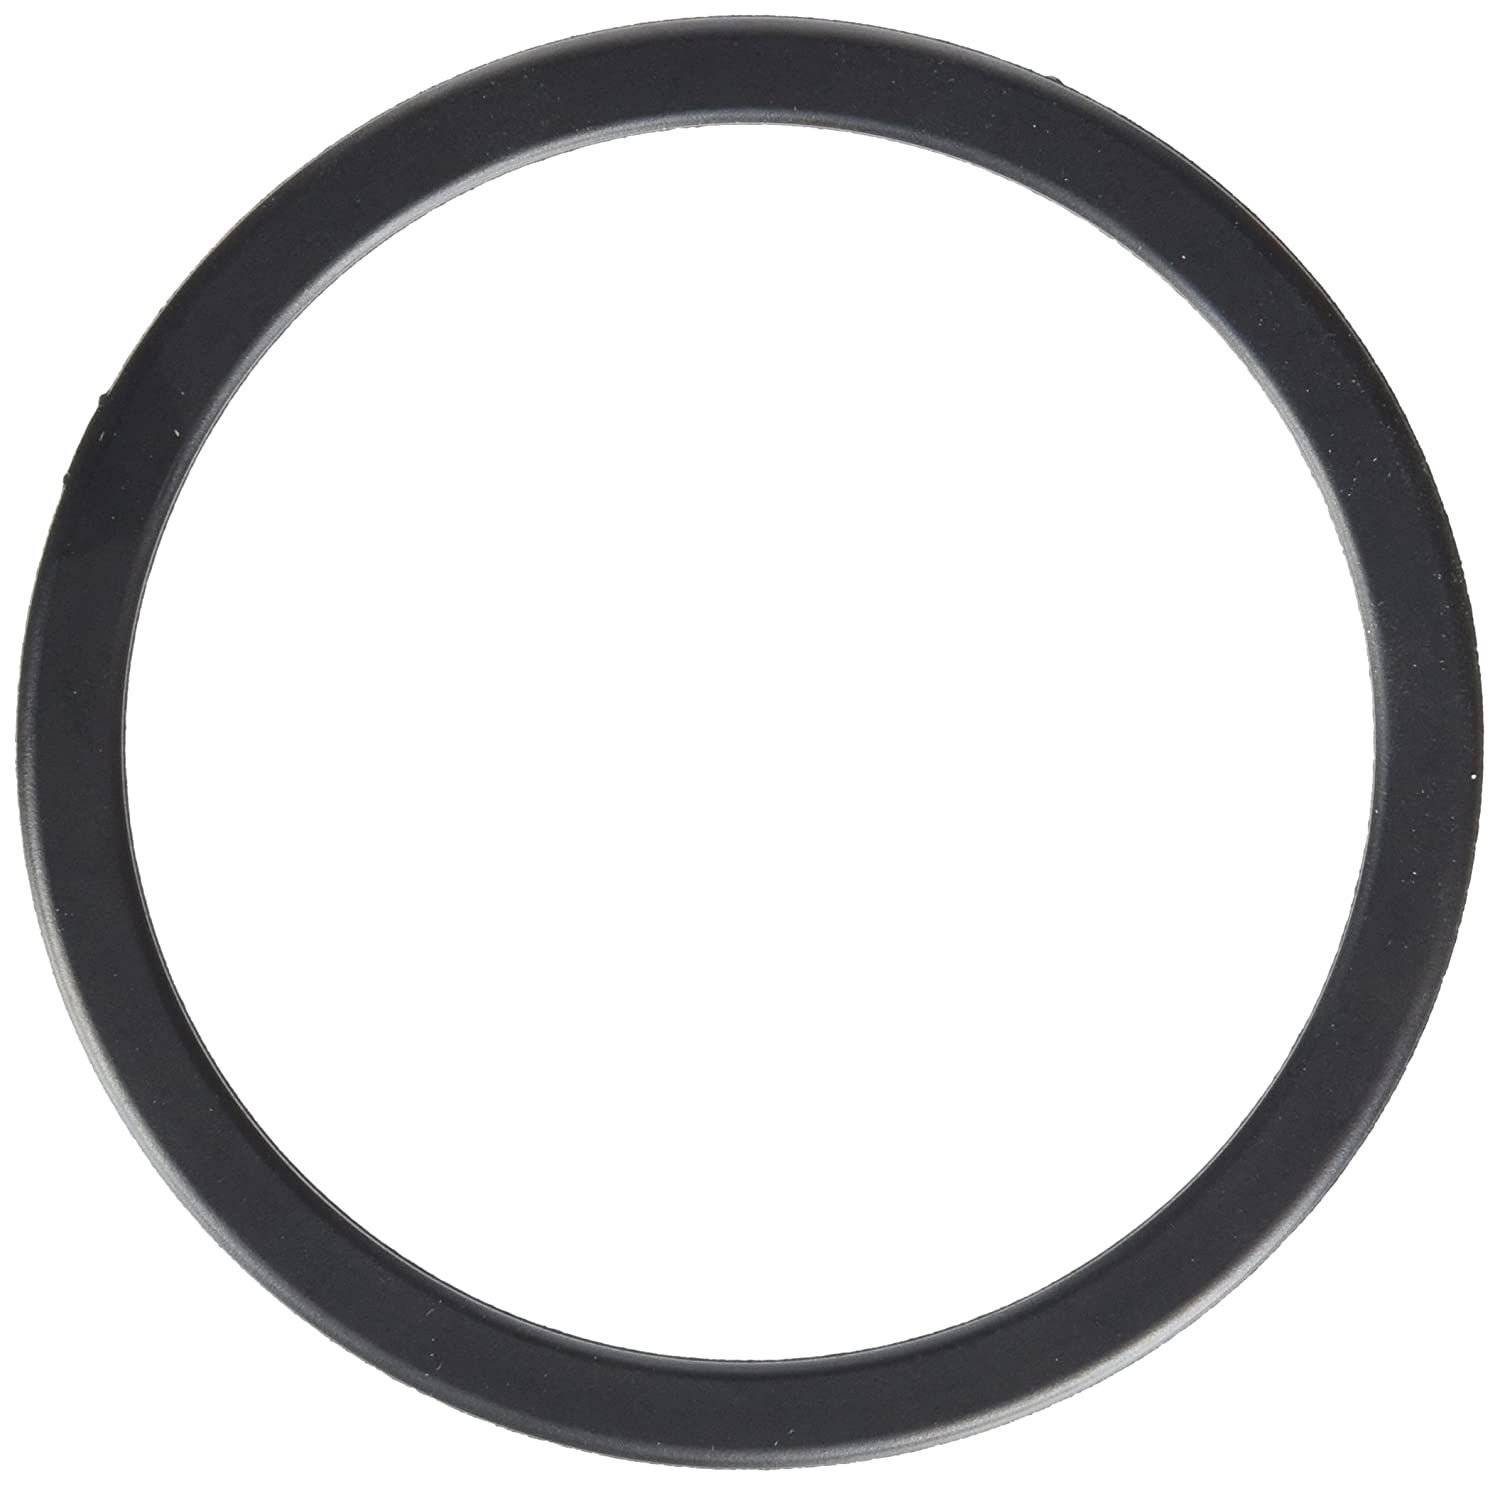 Genuine Toyota (77169-33020) Fuel Suction Gasket